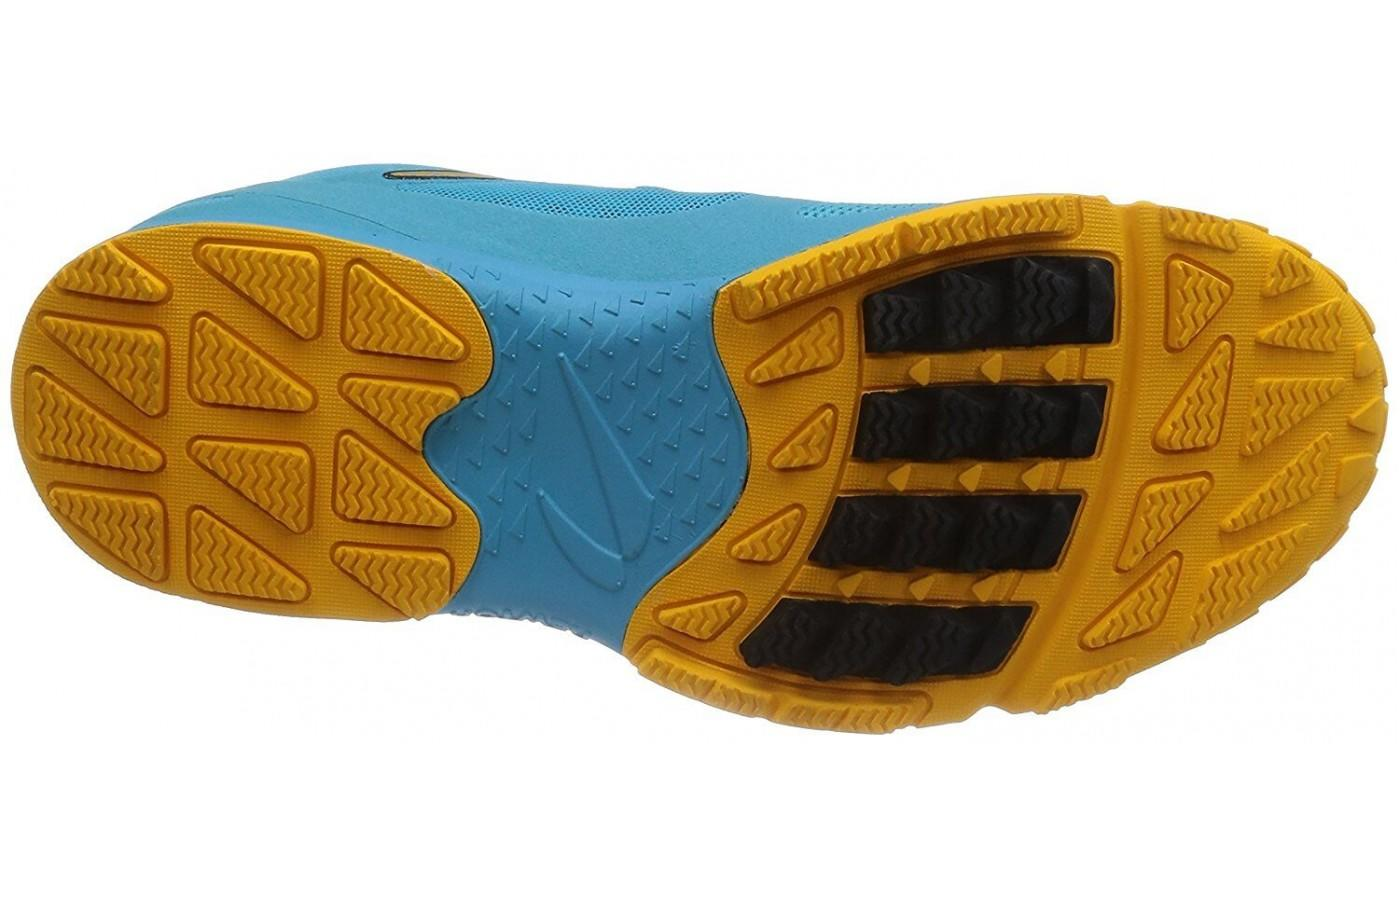 the outsole of the Newton BoCo Sol is covered with multi-directional lugs